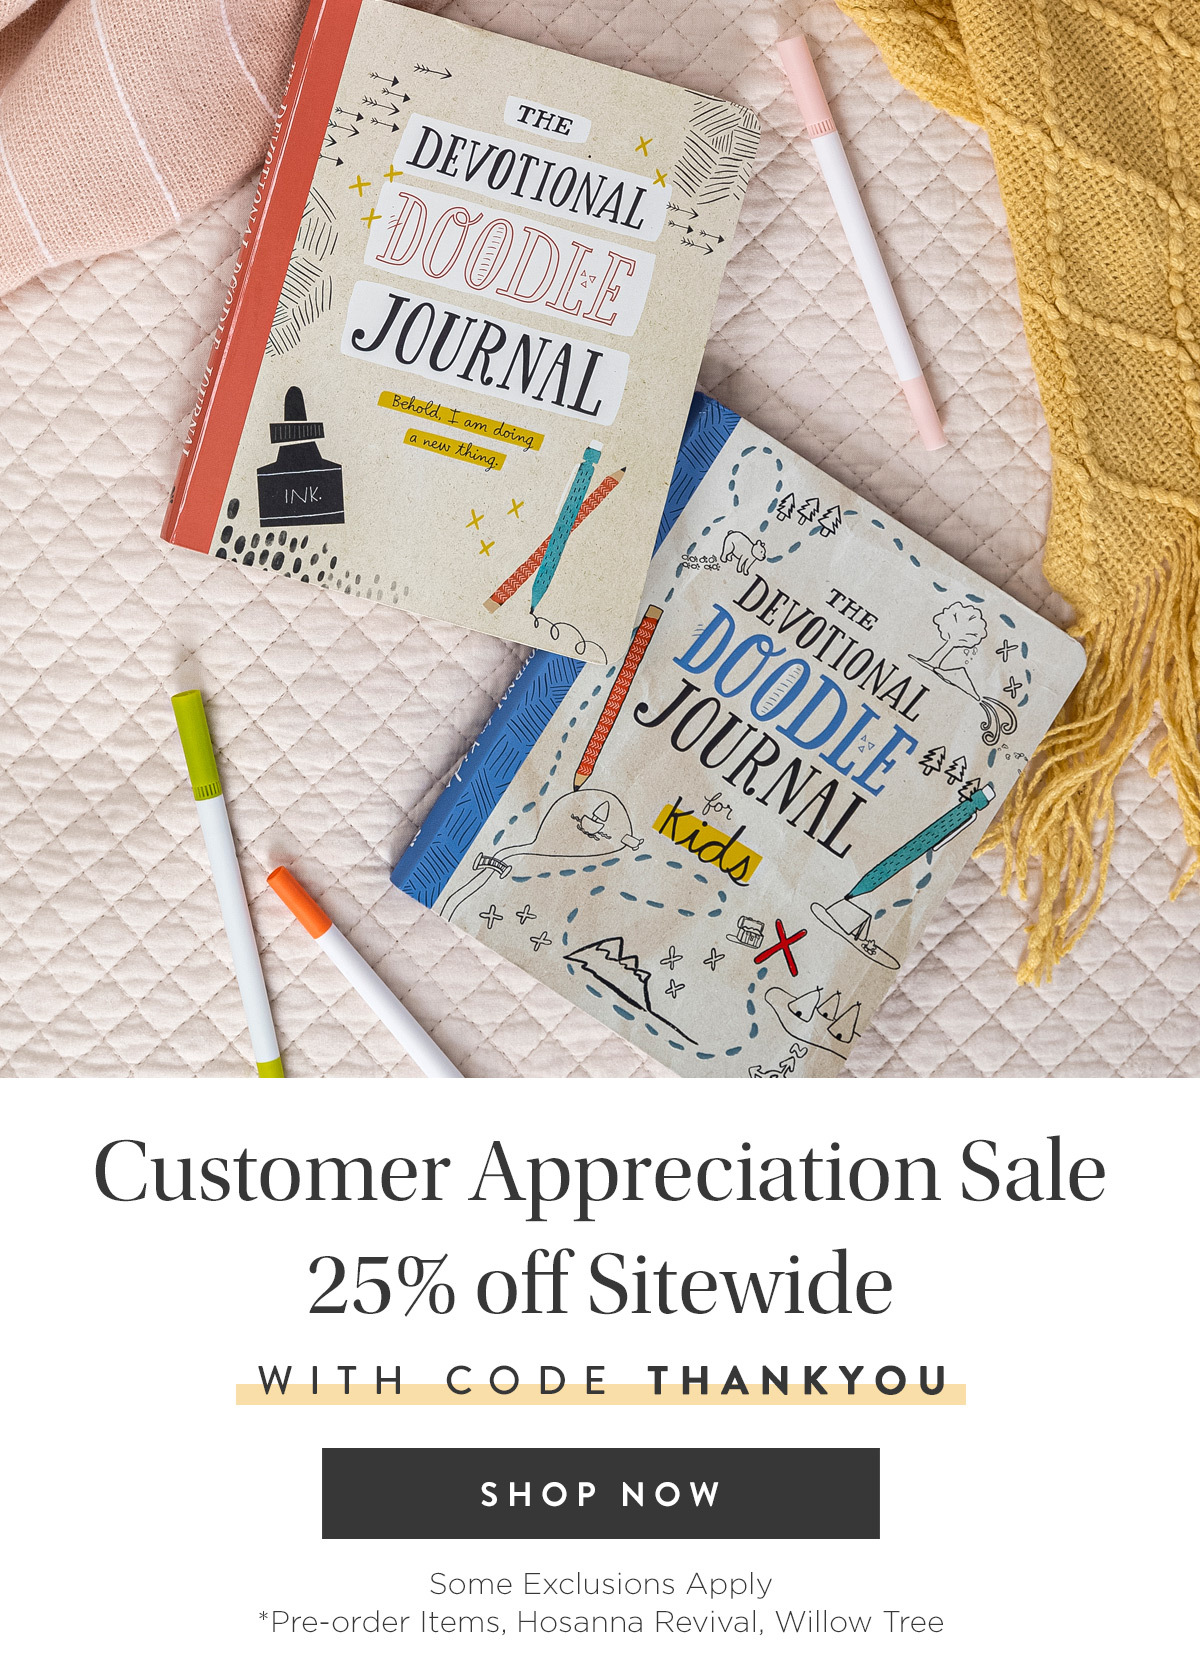 Customer Appreciation Sale - 25% off Sitewide with code THANKYOU - Some Exclusions Apply *DaySpring Hope & Encouragement Bible Pre-order, Hosanna Revival, Willow Tree > Shop Now